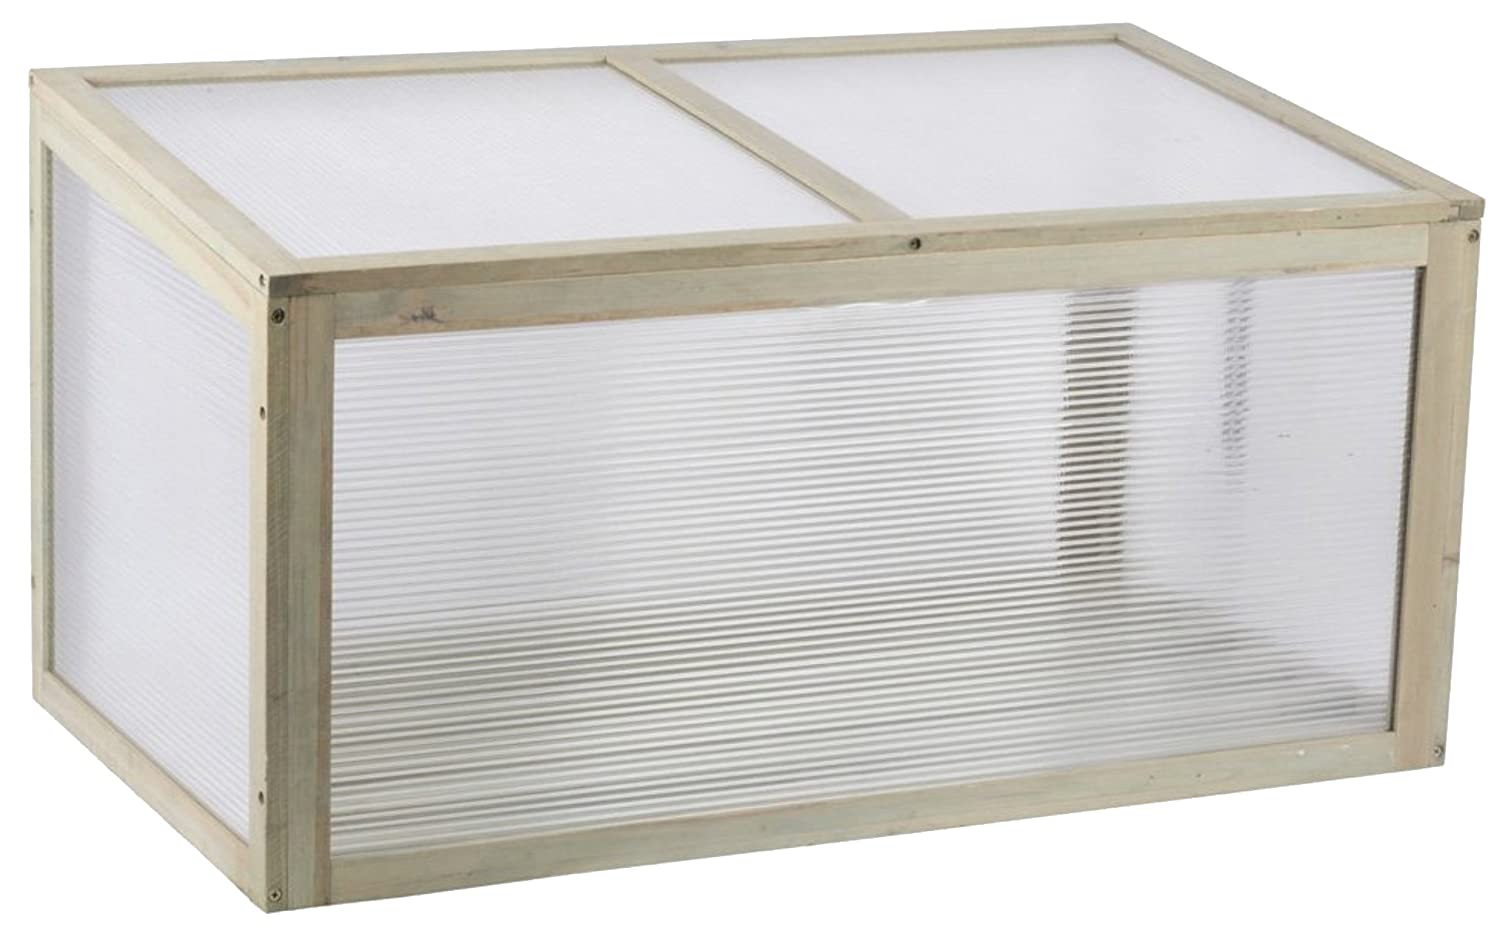 NEW 90Cm Natural Wood Greenhouse Wooden Frame Polycarbonate Panels Ideal For Germinating Seed Flower Plants Vegetable perfect planter box with lid Wheels N Bits